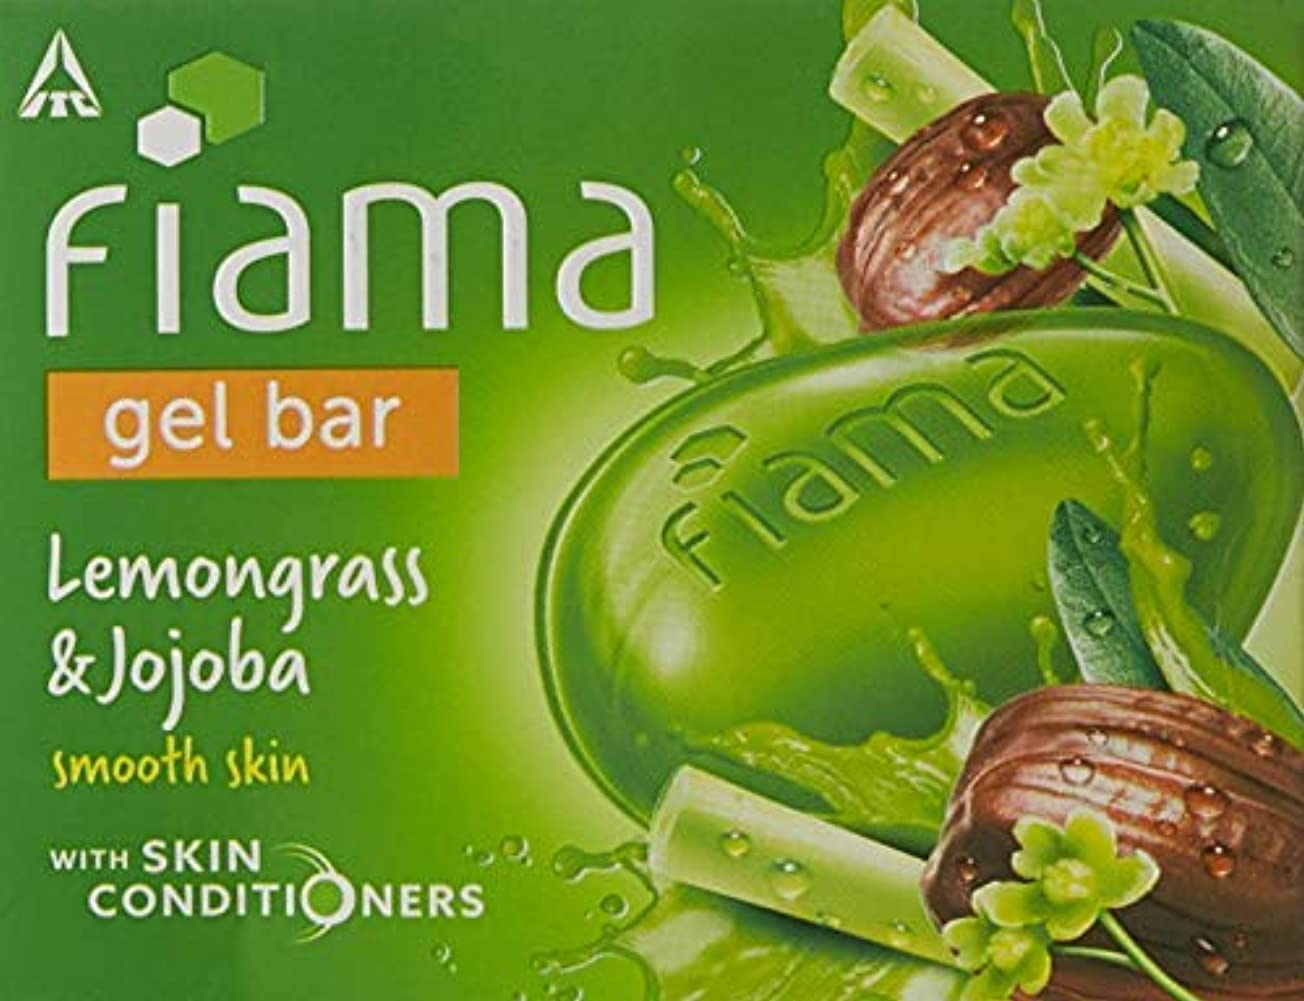 関数スカリーバルブFiama Di Wills Lemongrass & Jojoba Gel Bar, 125g (Pack Of 3)